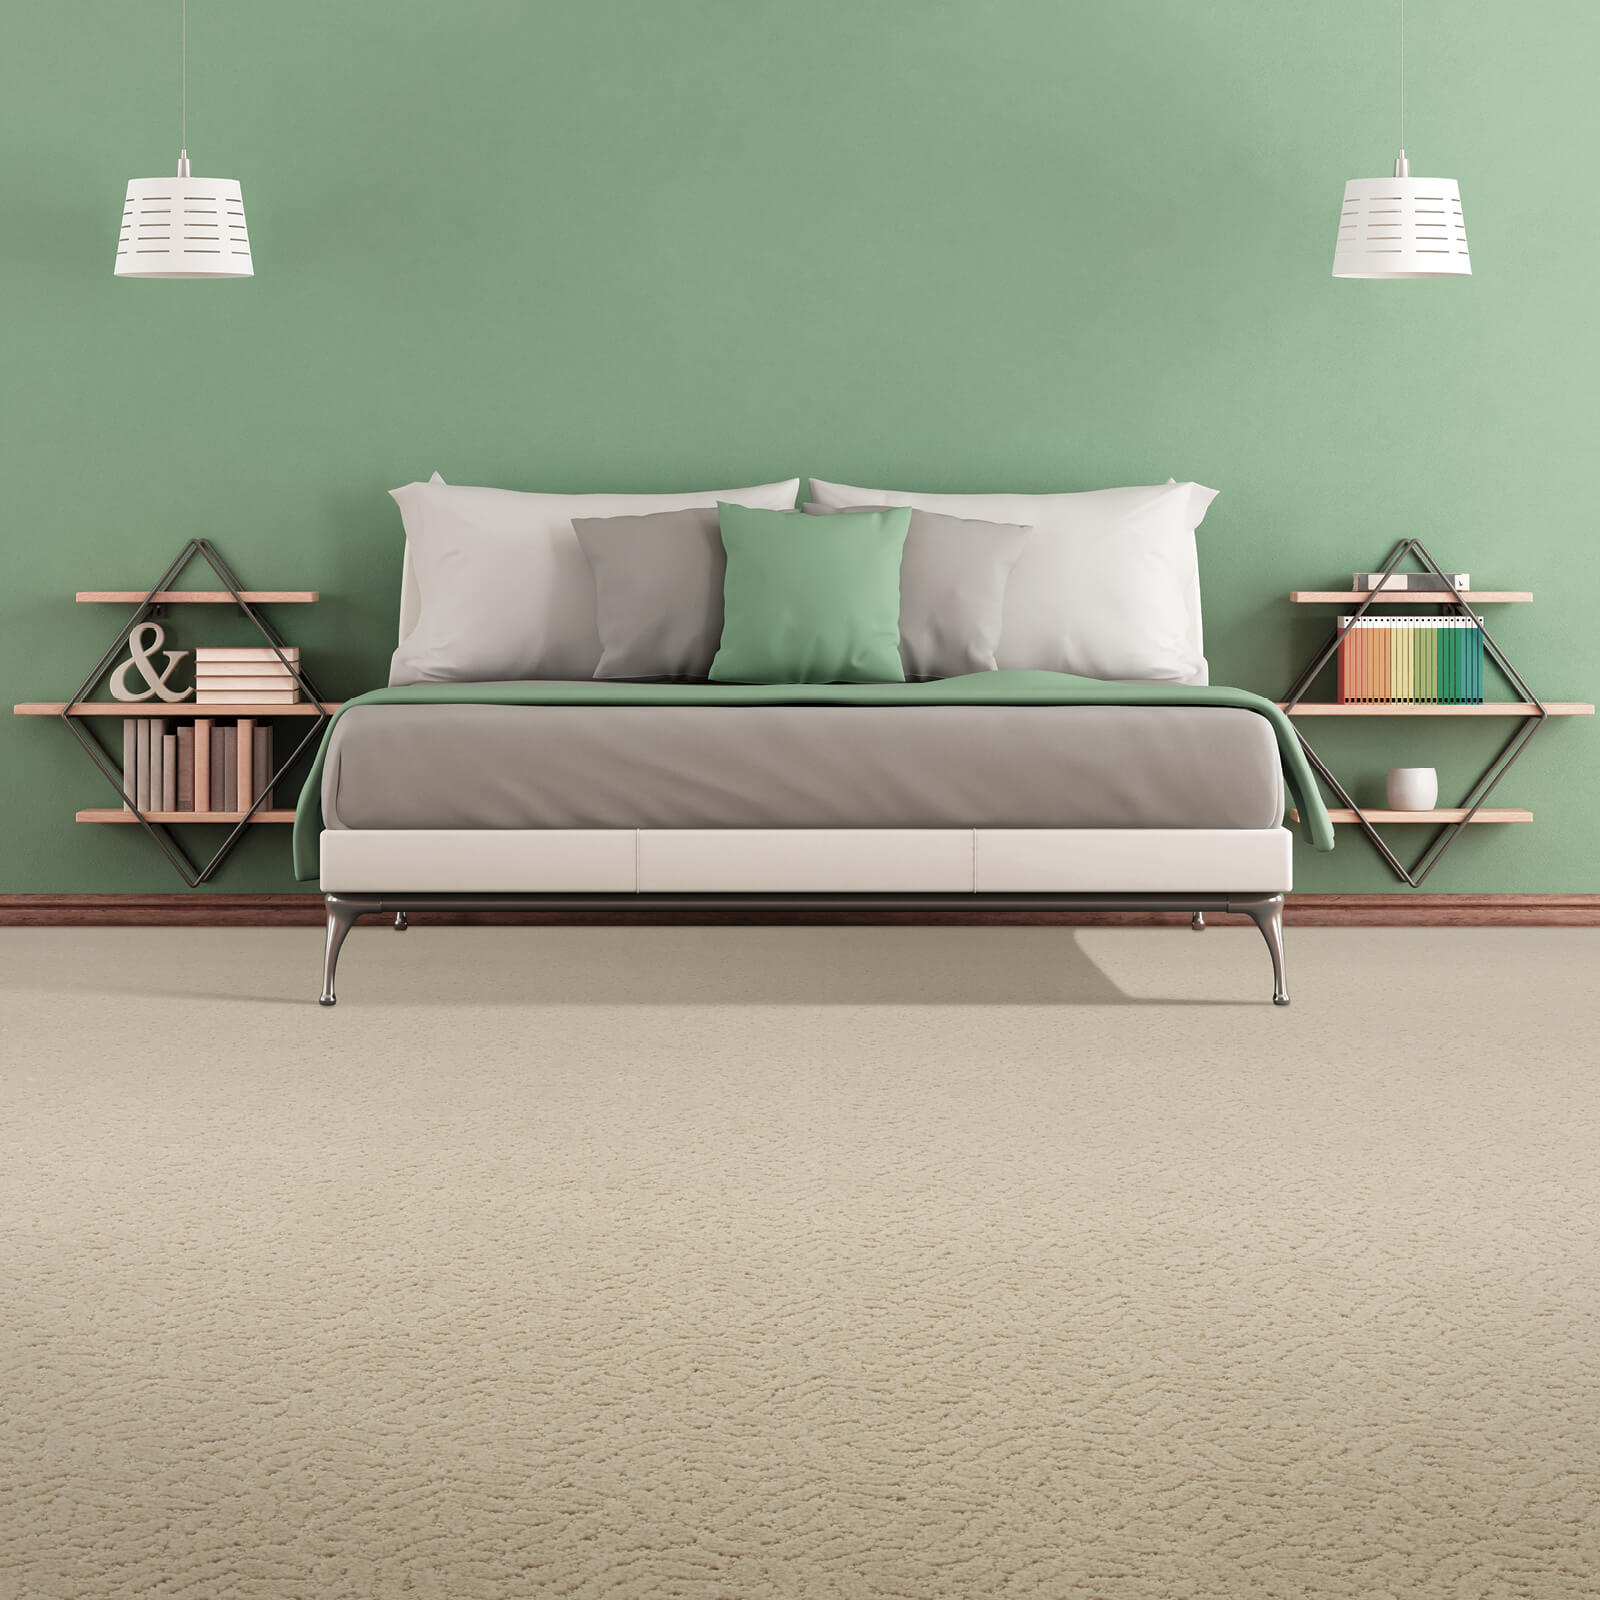 Green colorwall | The Carpet Stop